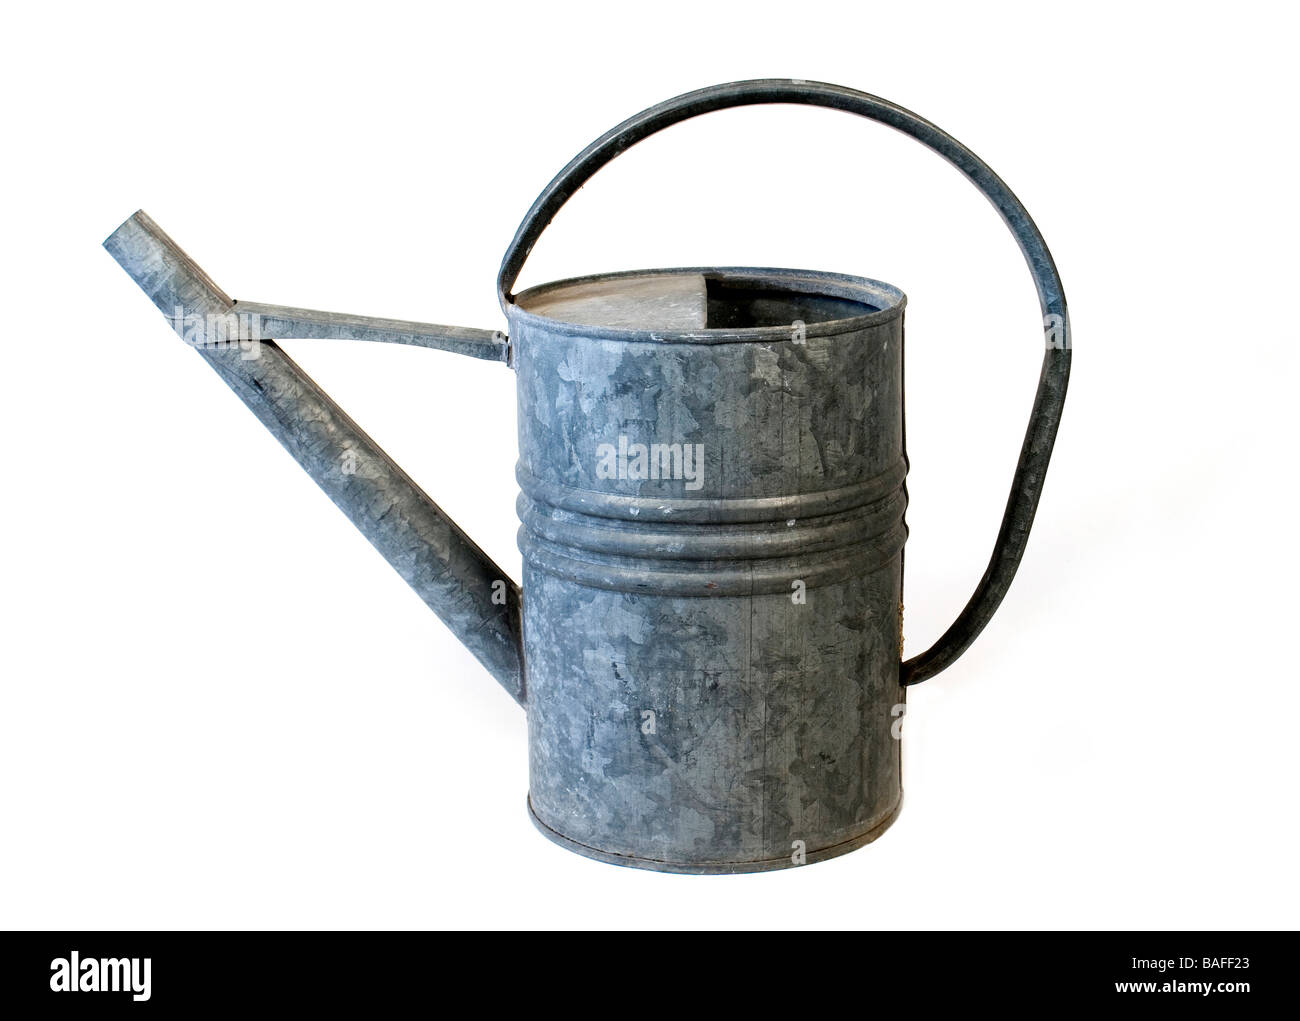 water can - Stock Image